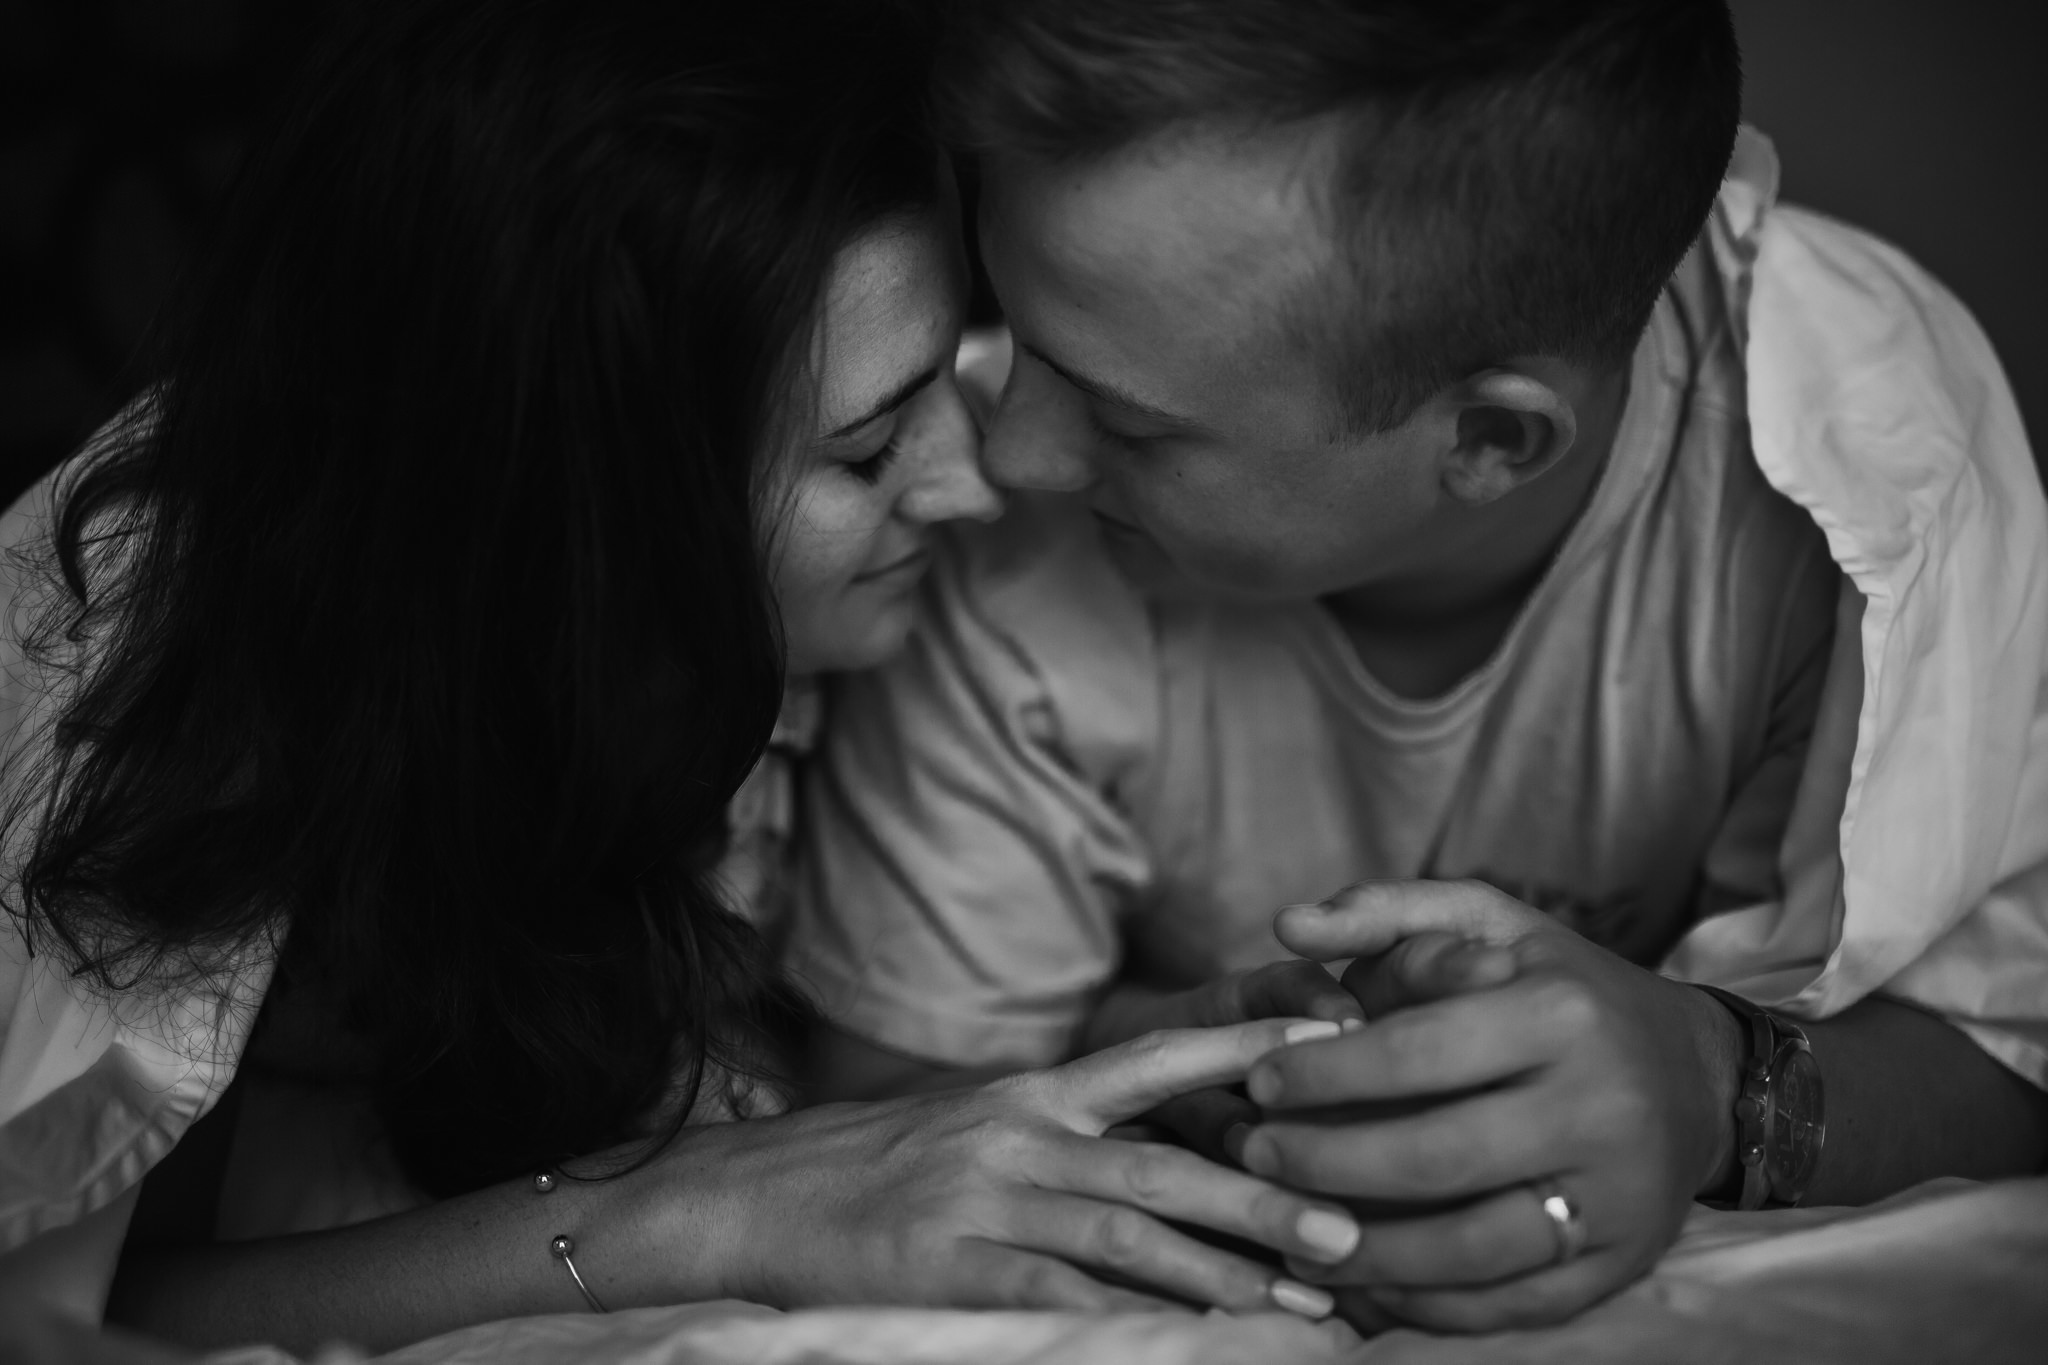 in-home-session-newlyweds-cassie-cook-photography-rosemary-beach-25.jpg